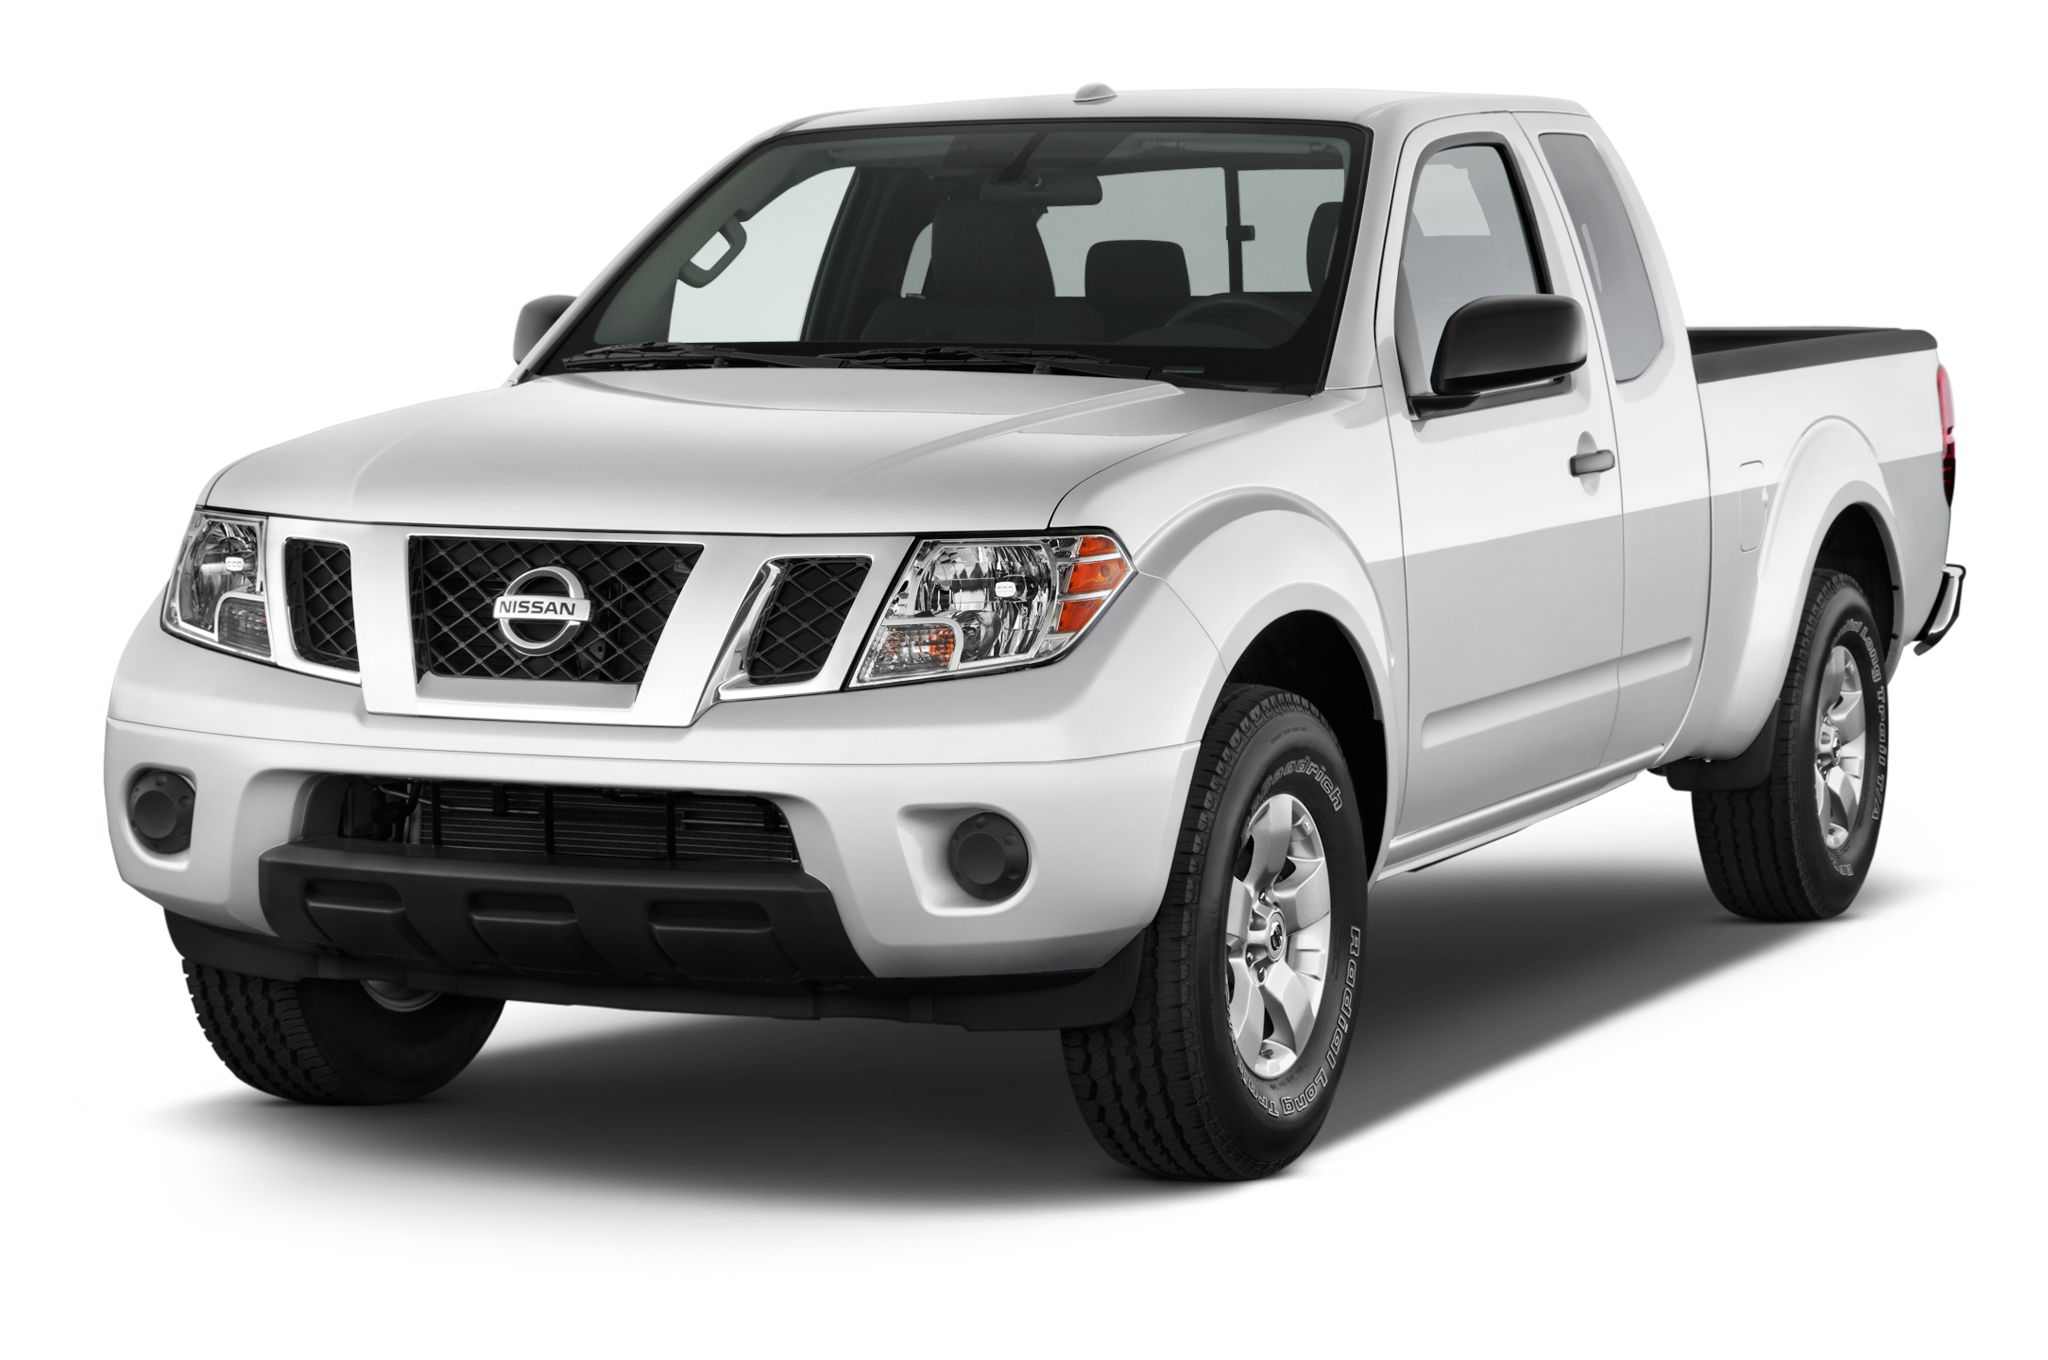 medium resolution of 2014 nissan frontier automatic transmission manual transmission repair manuals final drive